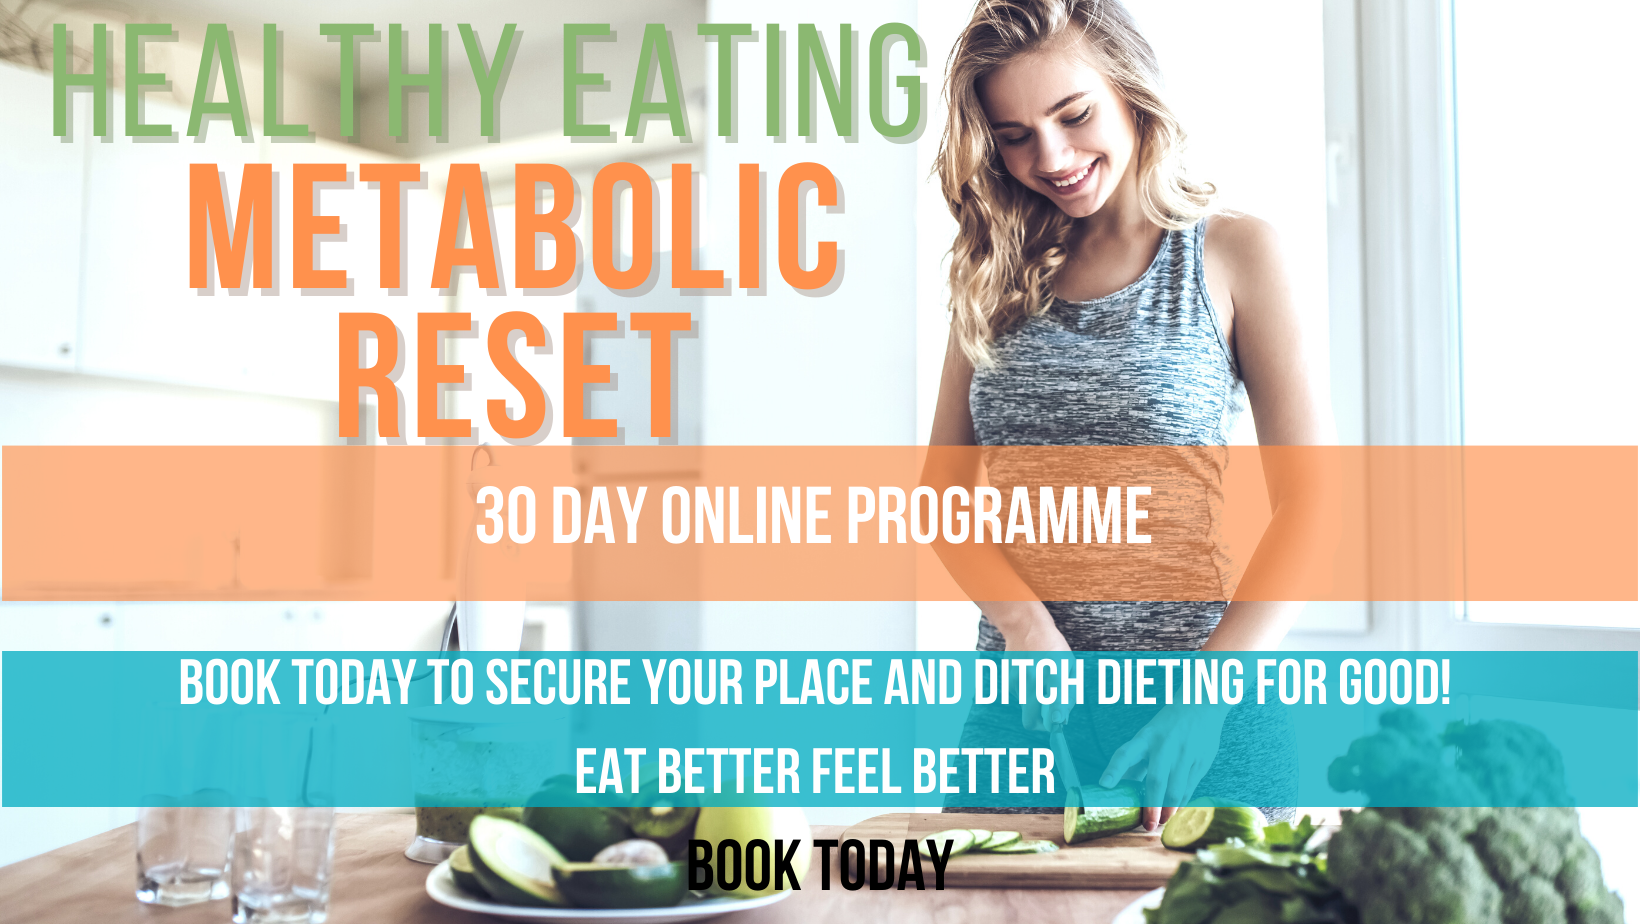 reset metabolism with healthy food eating programme online nutrition expert Evie